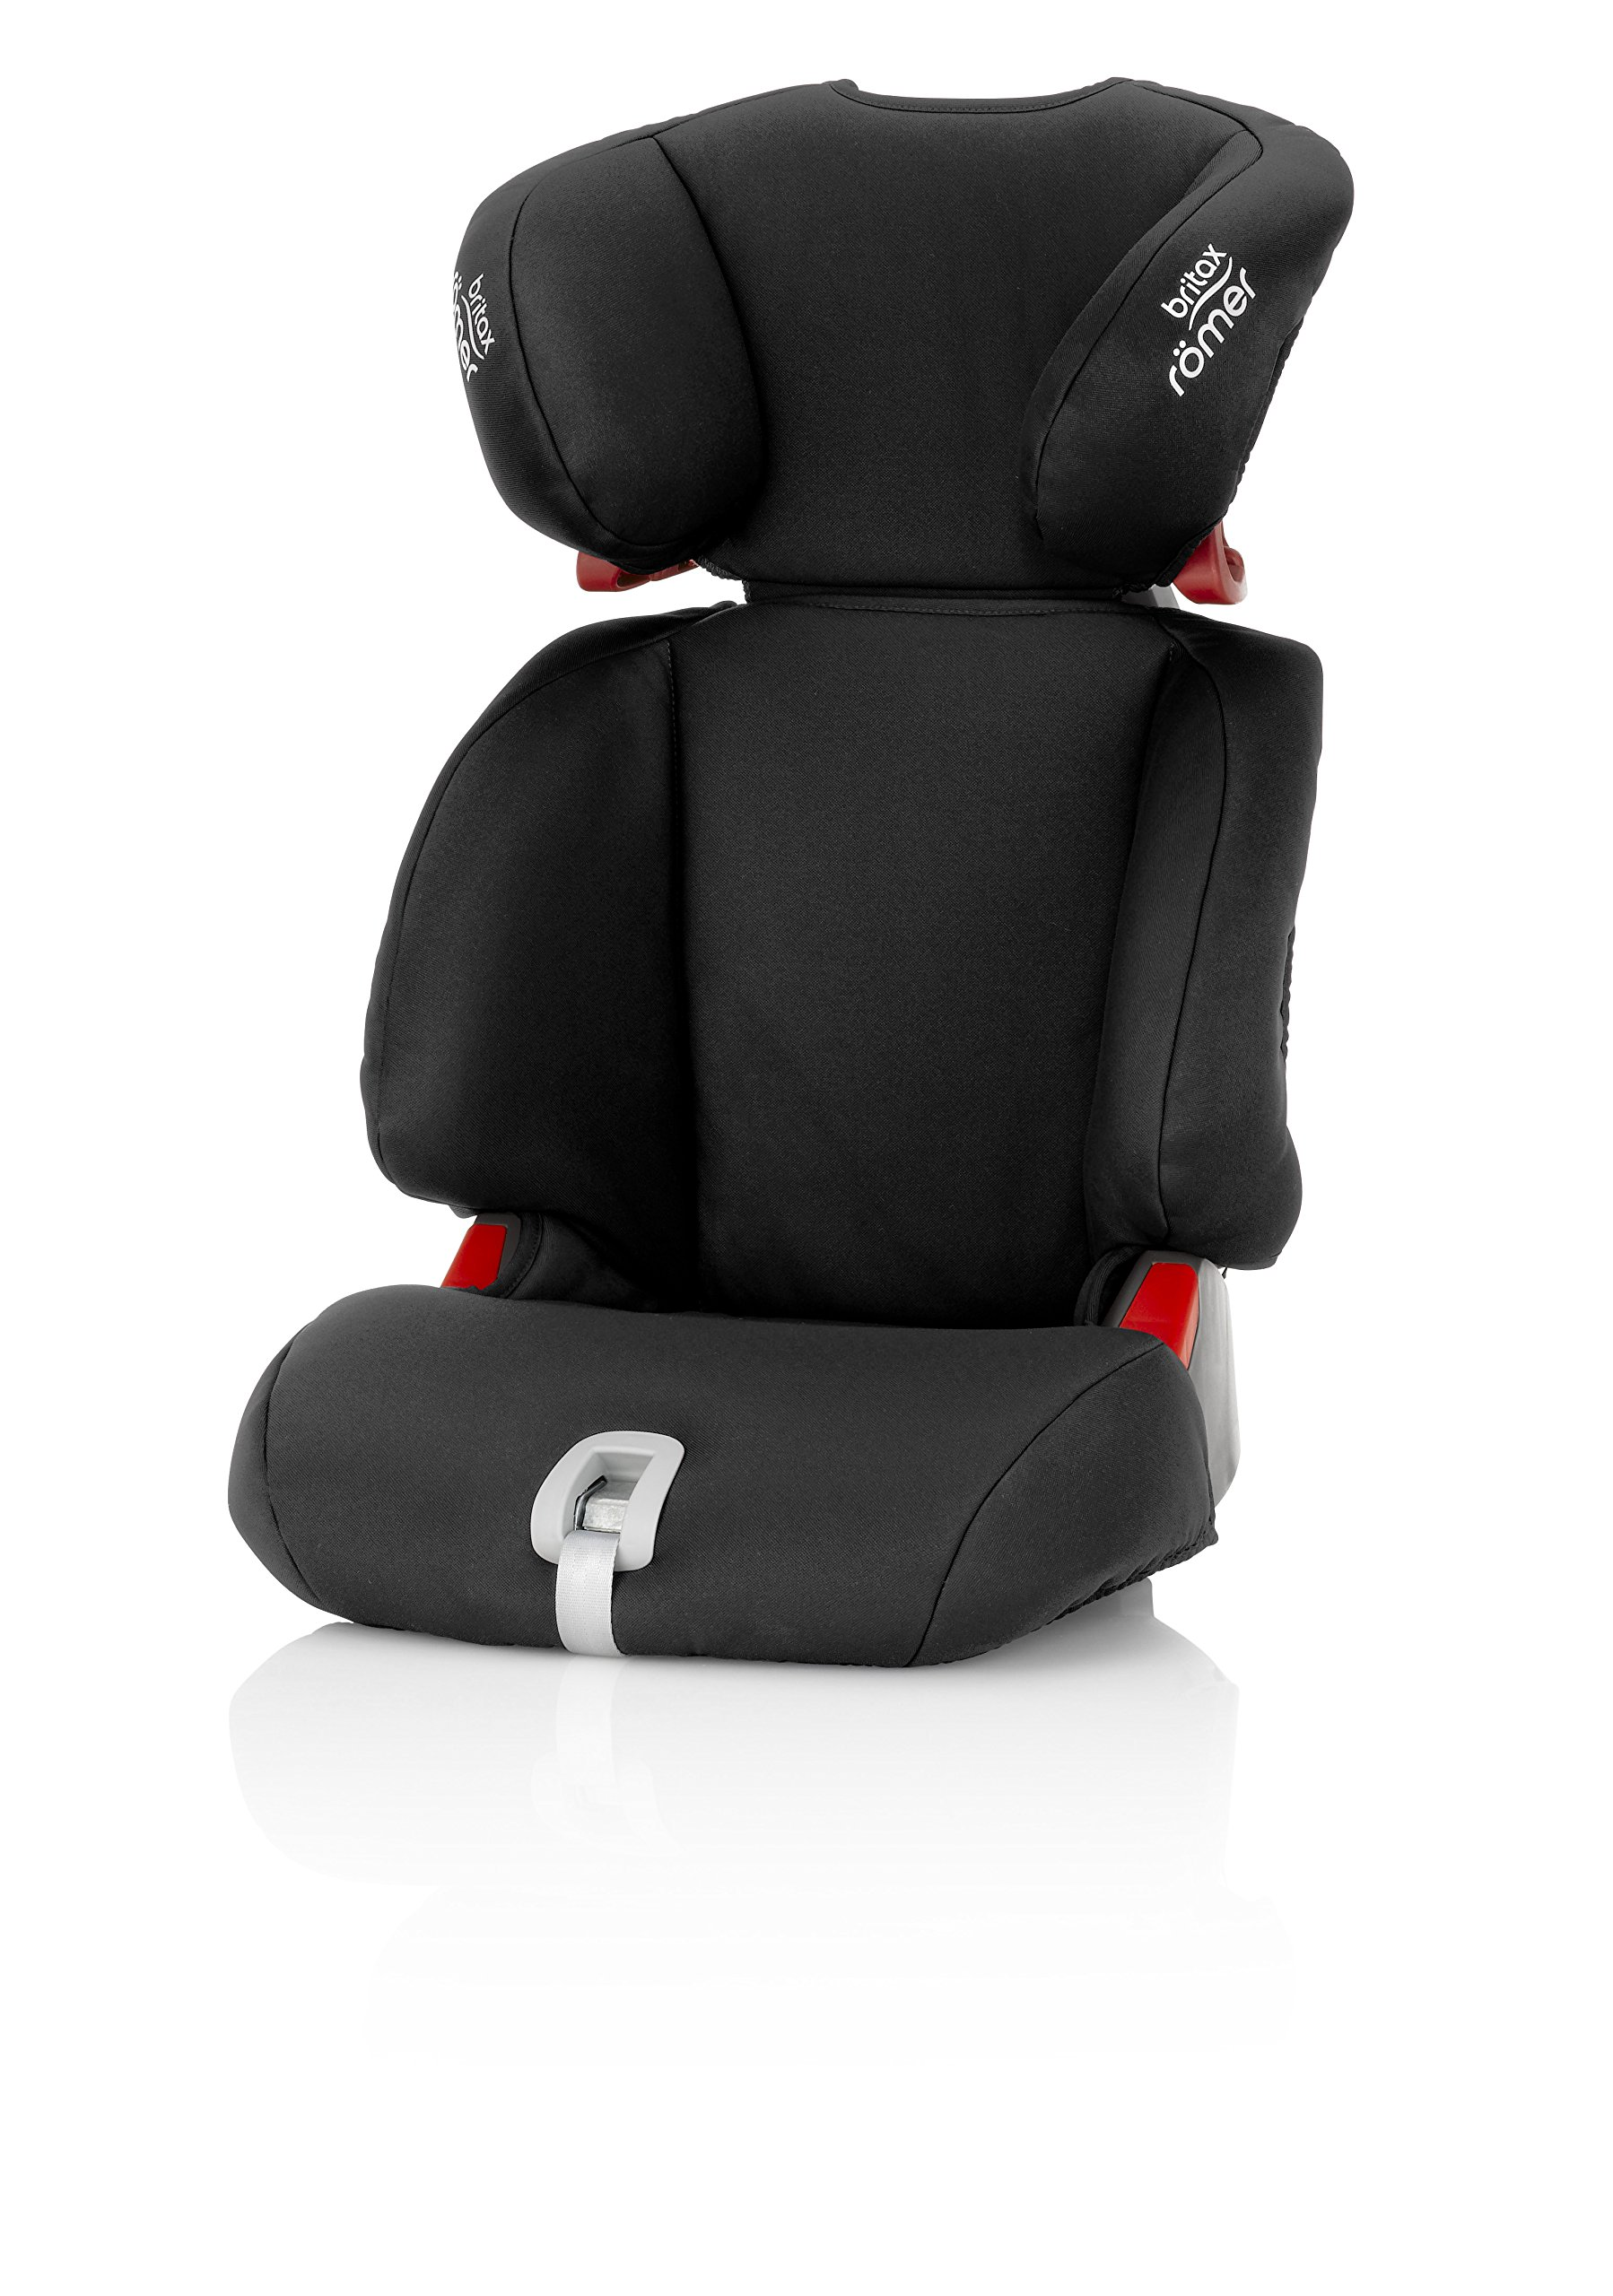 Britax Römer DISCOVERY SL Group 2-3 (15-36kg) Car Seat - Cosmos Black Britax The DISCOVERY SL is an award-winning highback booster seat with flexible installation options to suit any car - with optional attachment to the car's ISOFIX anchorage points. All in a lightweight shell for easy transfer between cars Highback booster protection - this highback booster will protect your child in 3 ways: the seat shell provides head to hip protection; the upper and lower belt guides provide correct positioning of the seat belt; and the padded headrest provides safety and comfort Adjustable backrest - the child seat's adjustable backrest allows you to match the angle of the vehicle seat, providing a better fit and a comfortable position for your child 1